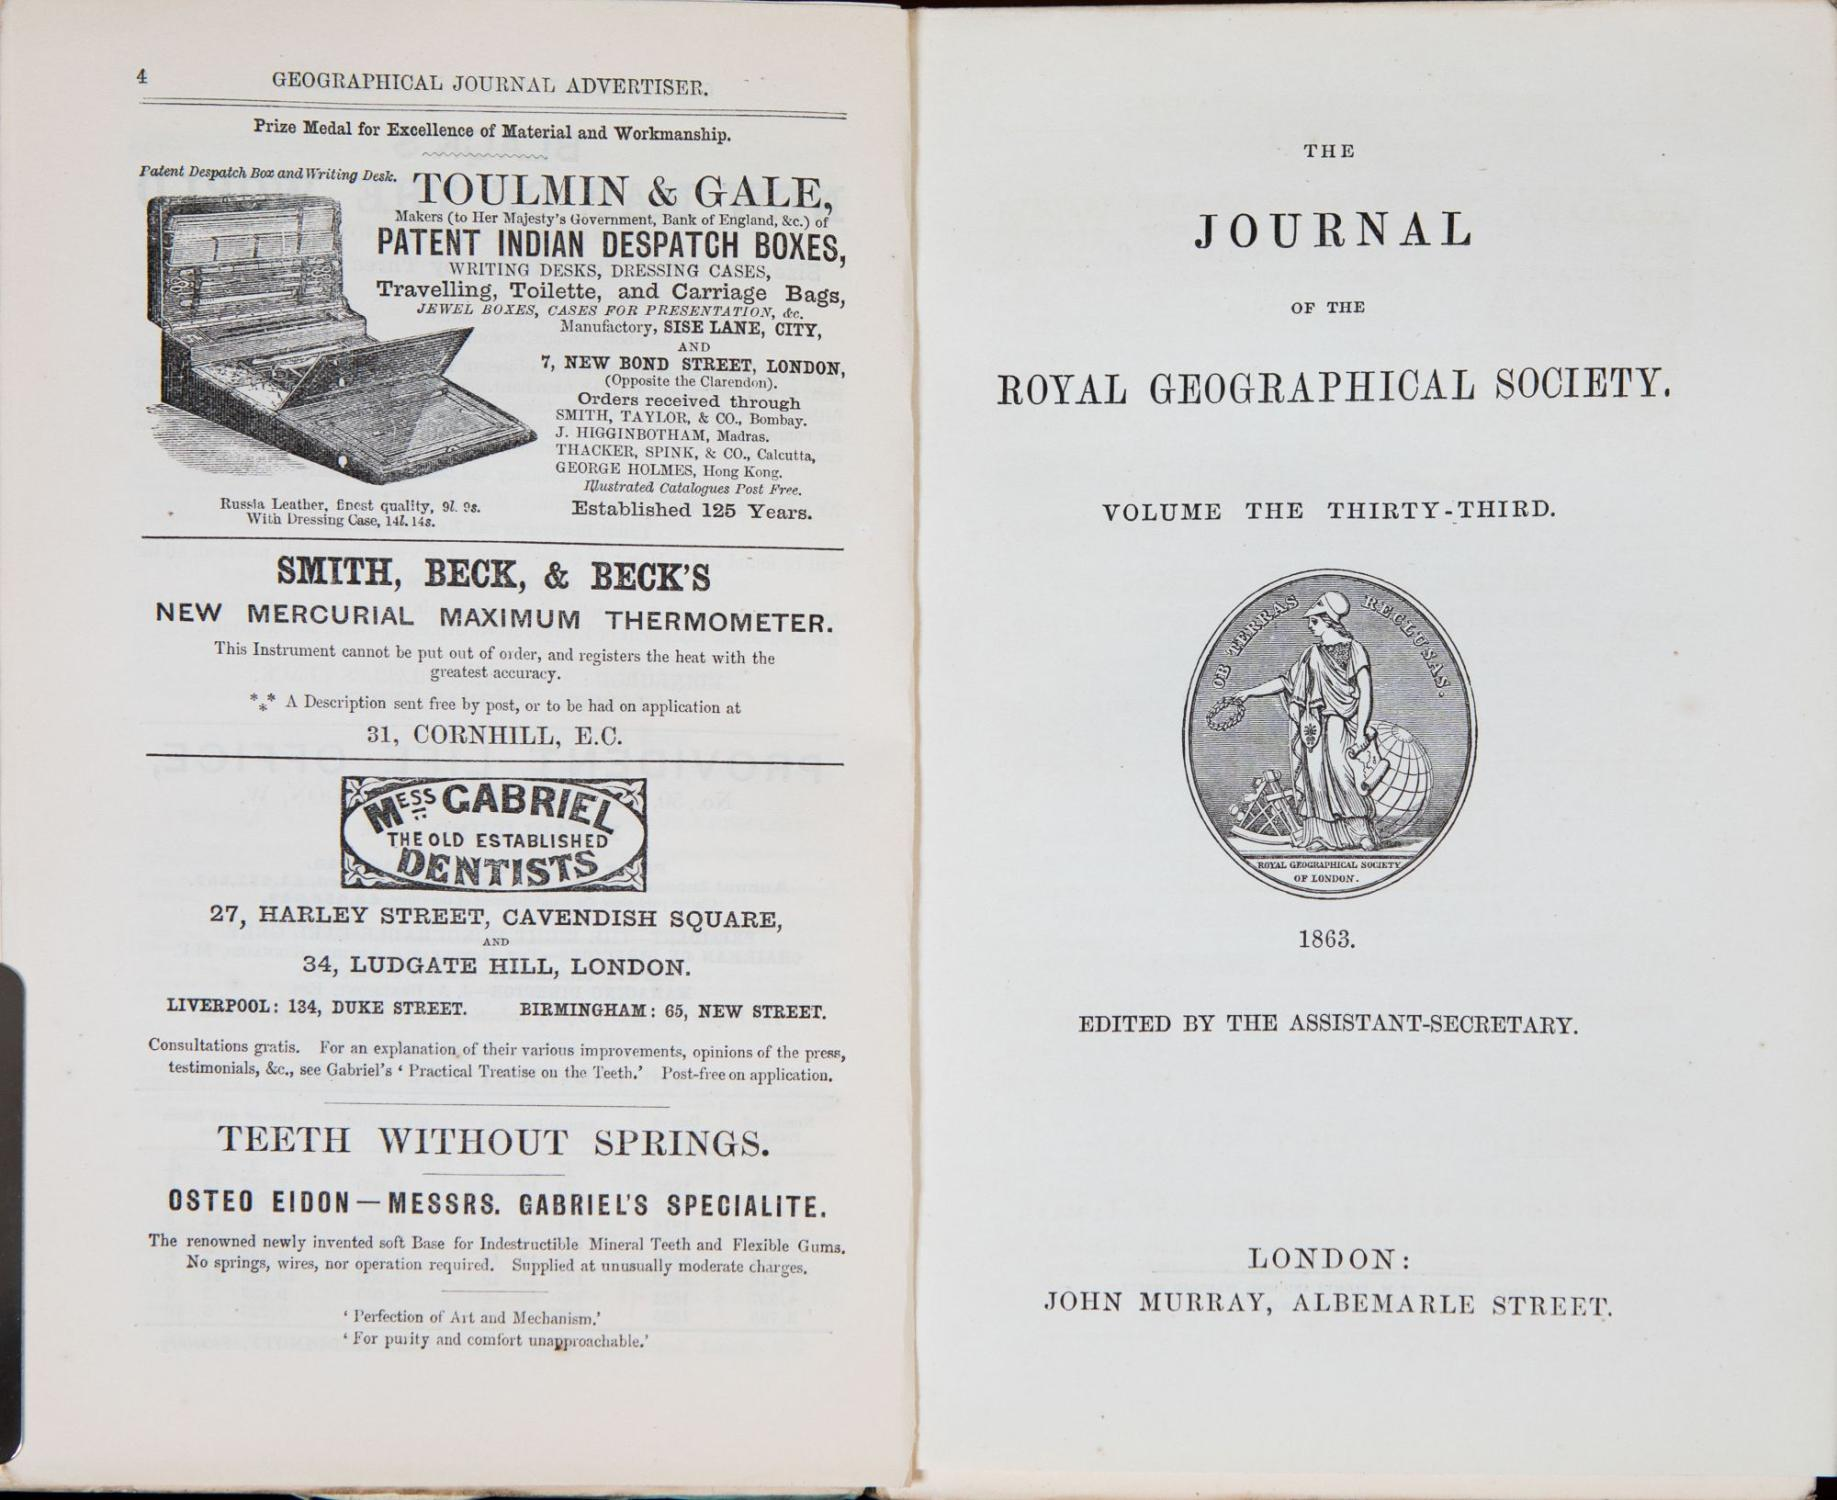 The Journal of the Royal Geographical Society of London by